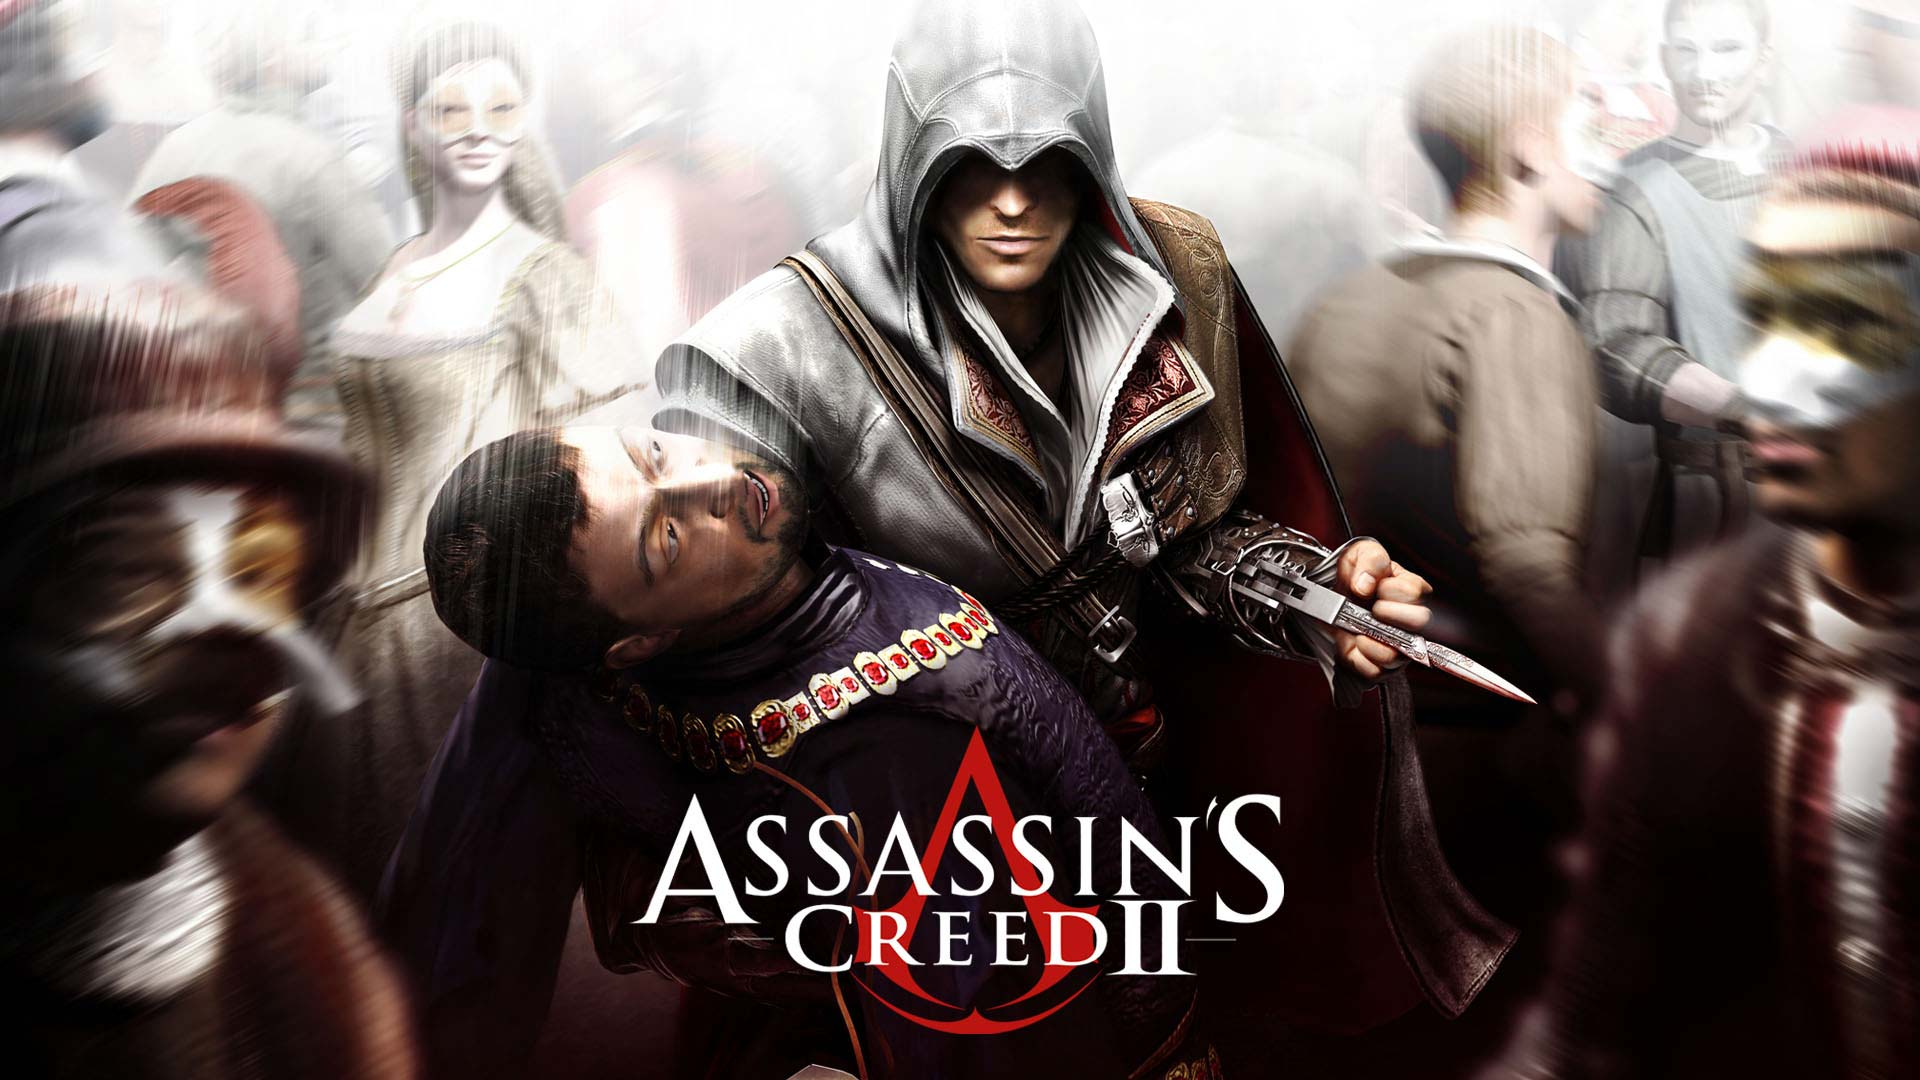 ezio assassins creed ii - photo #10